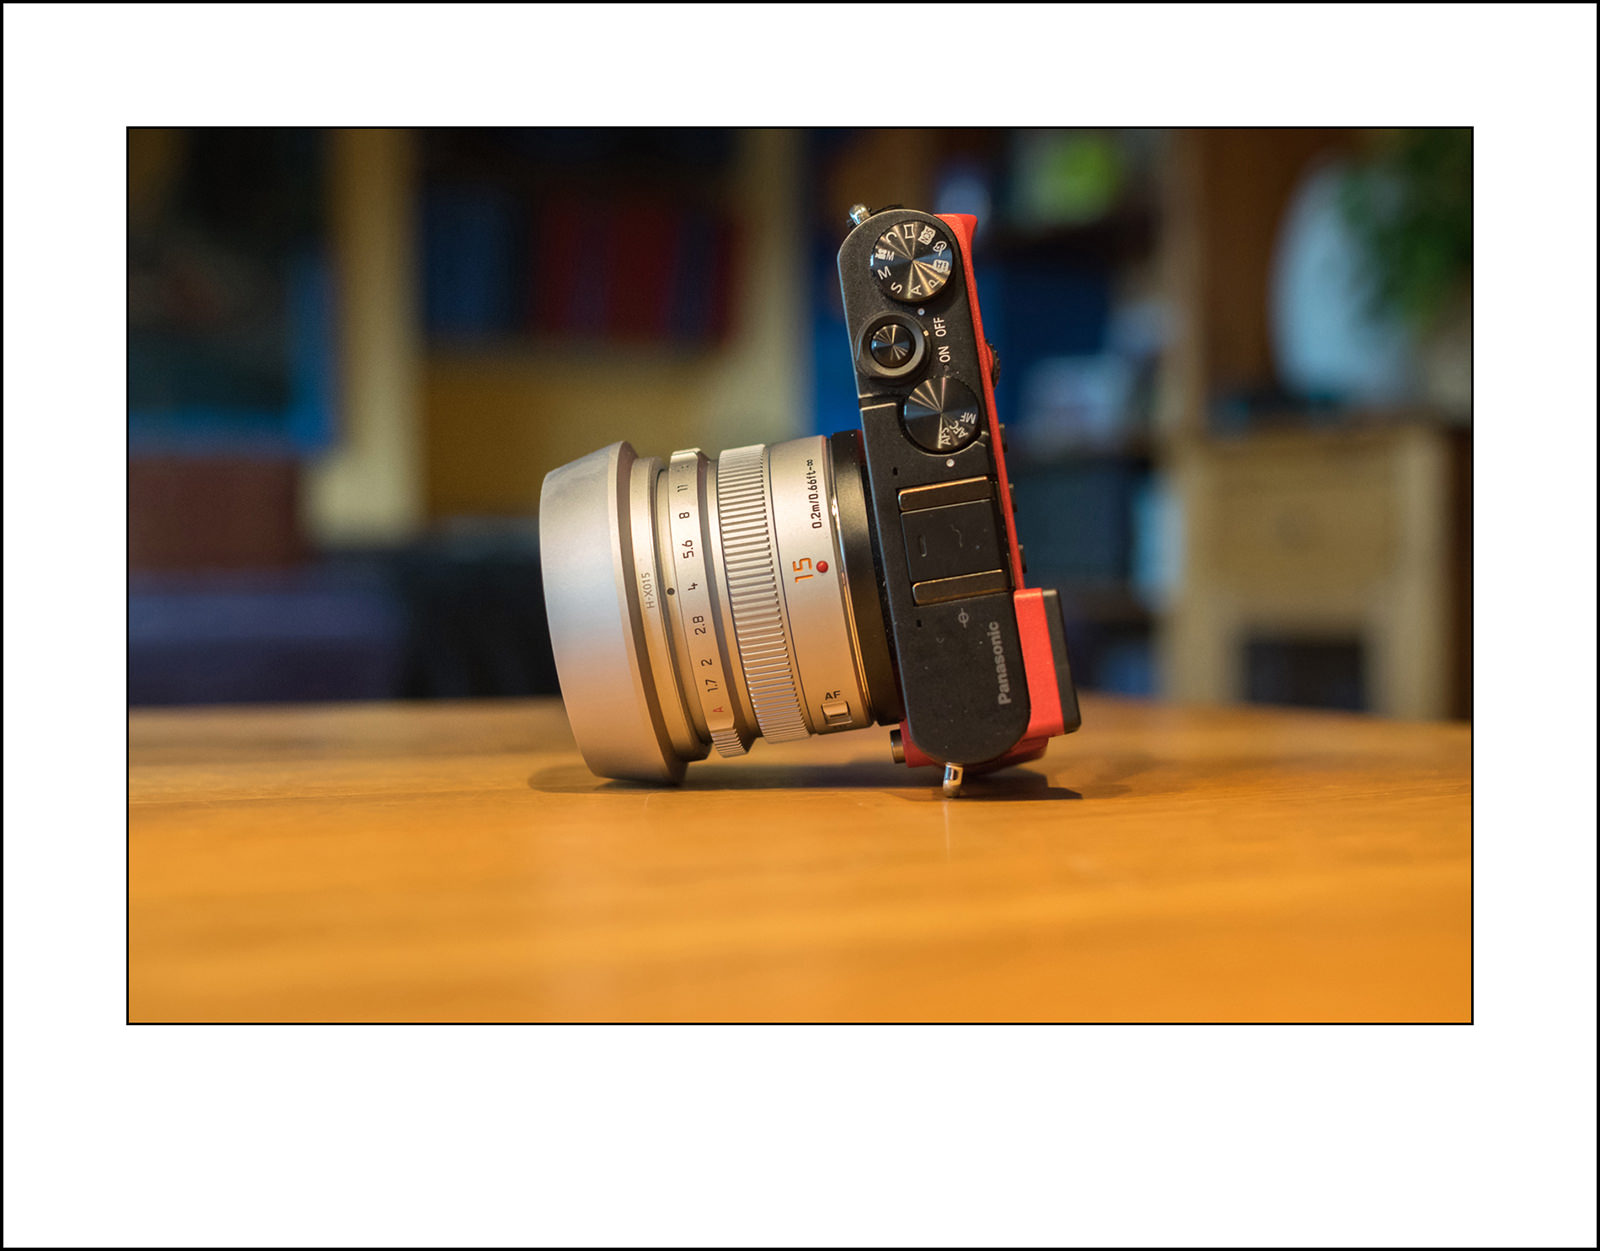 Panasonic GM5 - Panasonic Leica 15 f1.7